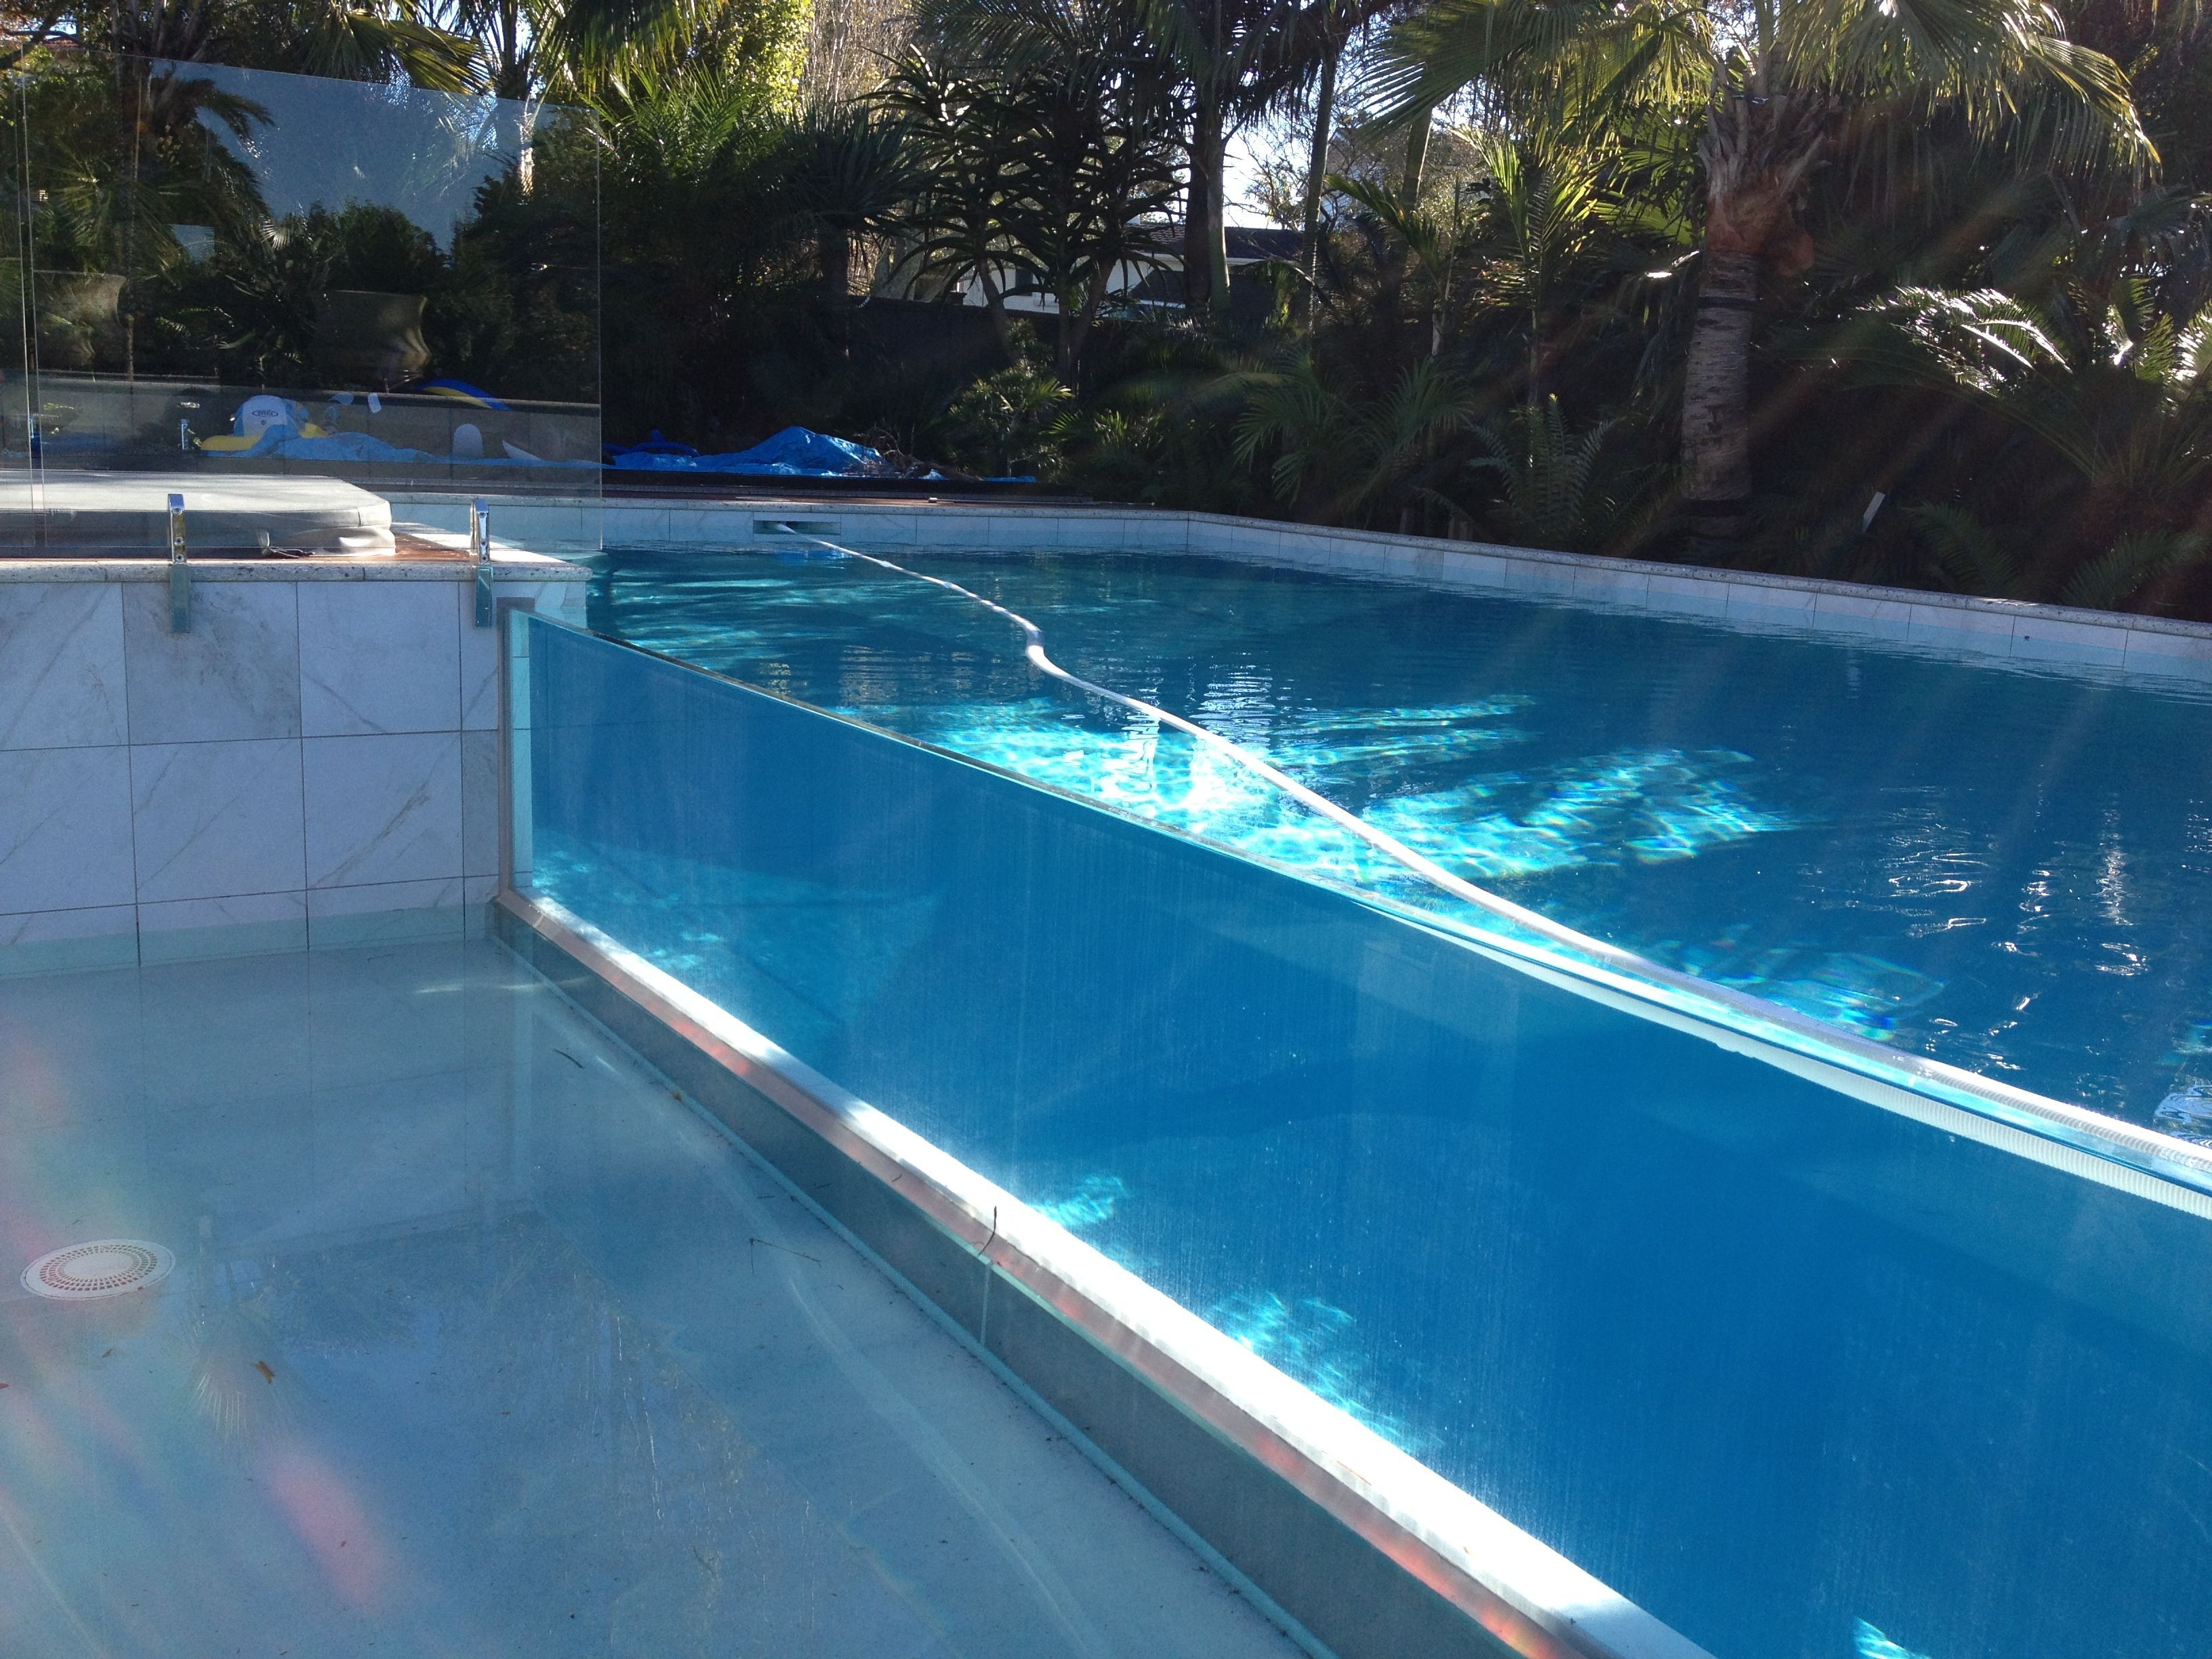 37 Swimming Pool Ideas Revive Your Spirit After Working All Day Indoor Outdoor Pool Swimming Pools Swimming Pool Designs